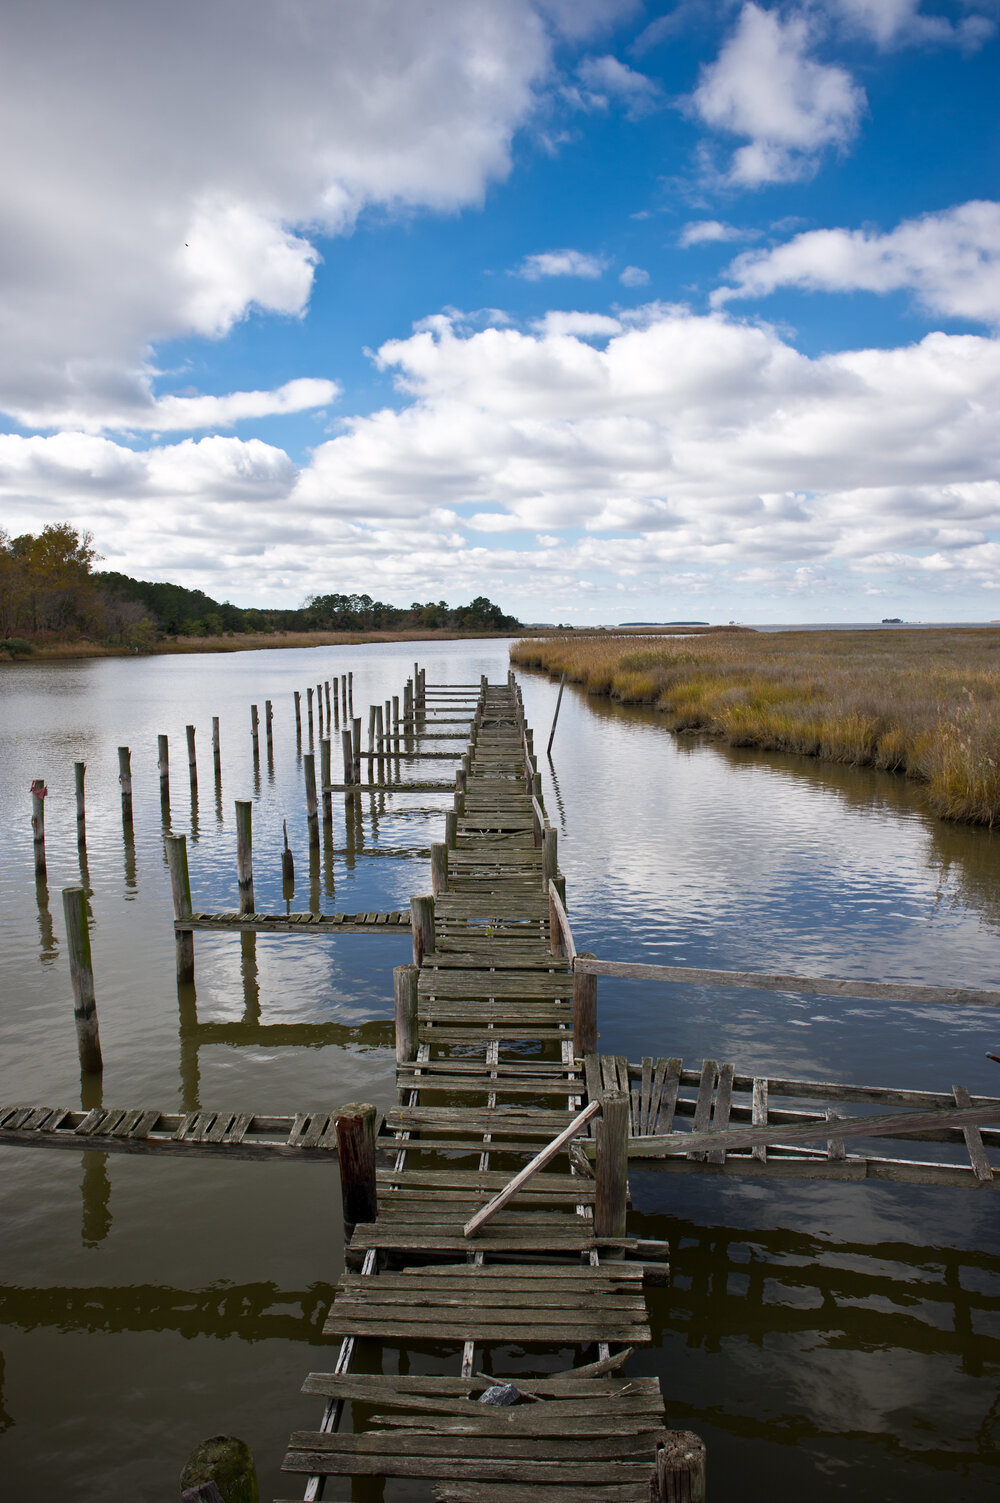 Photo shows a dilapidated dock on Wetipquin Creek, Maryland. Photo Credit: Edwin Remsberg.